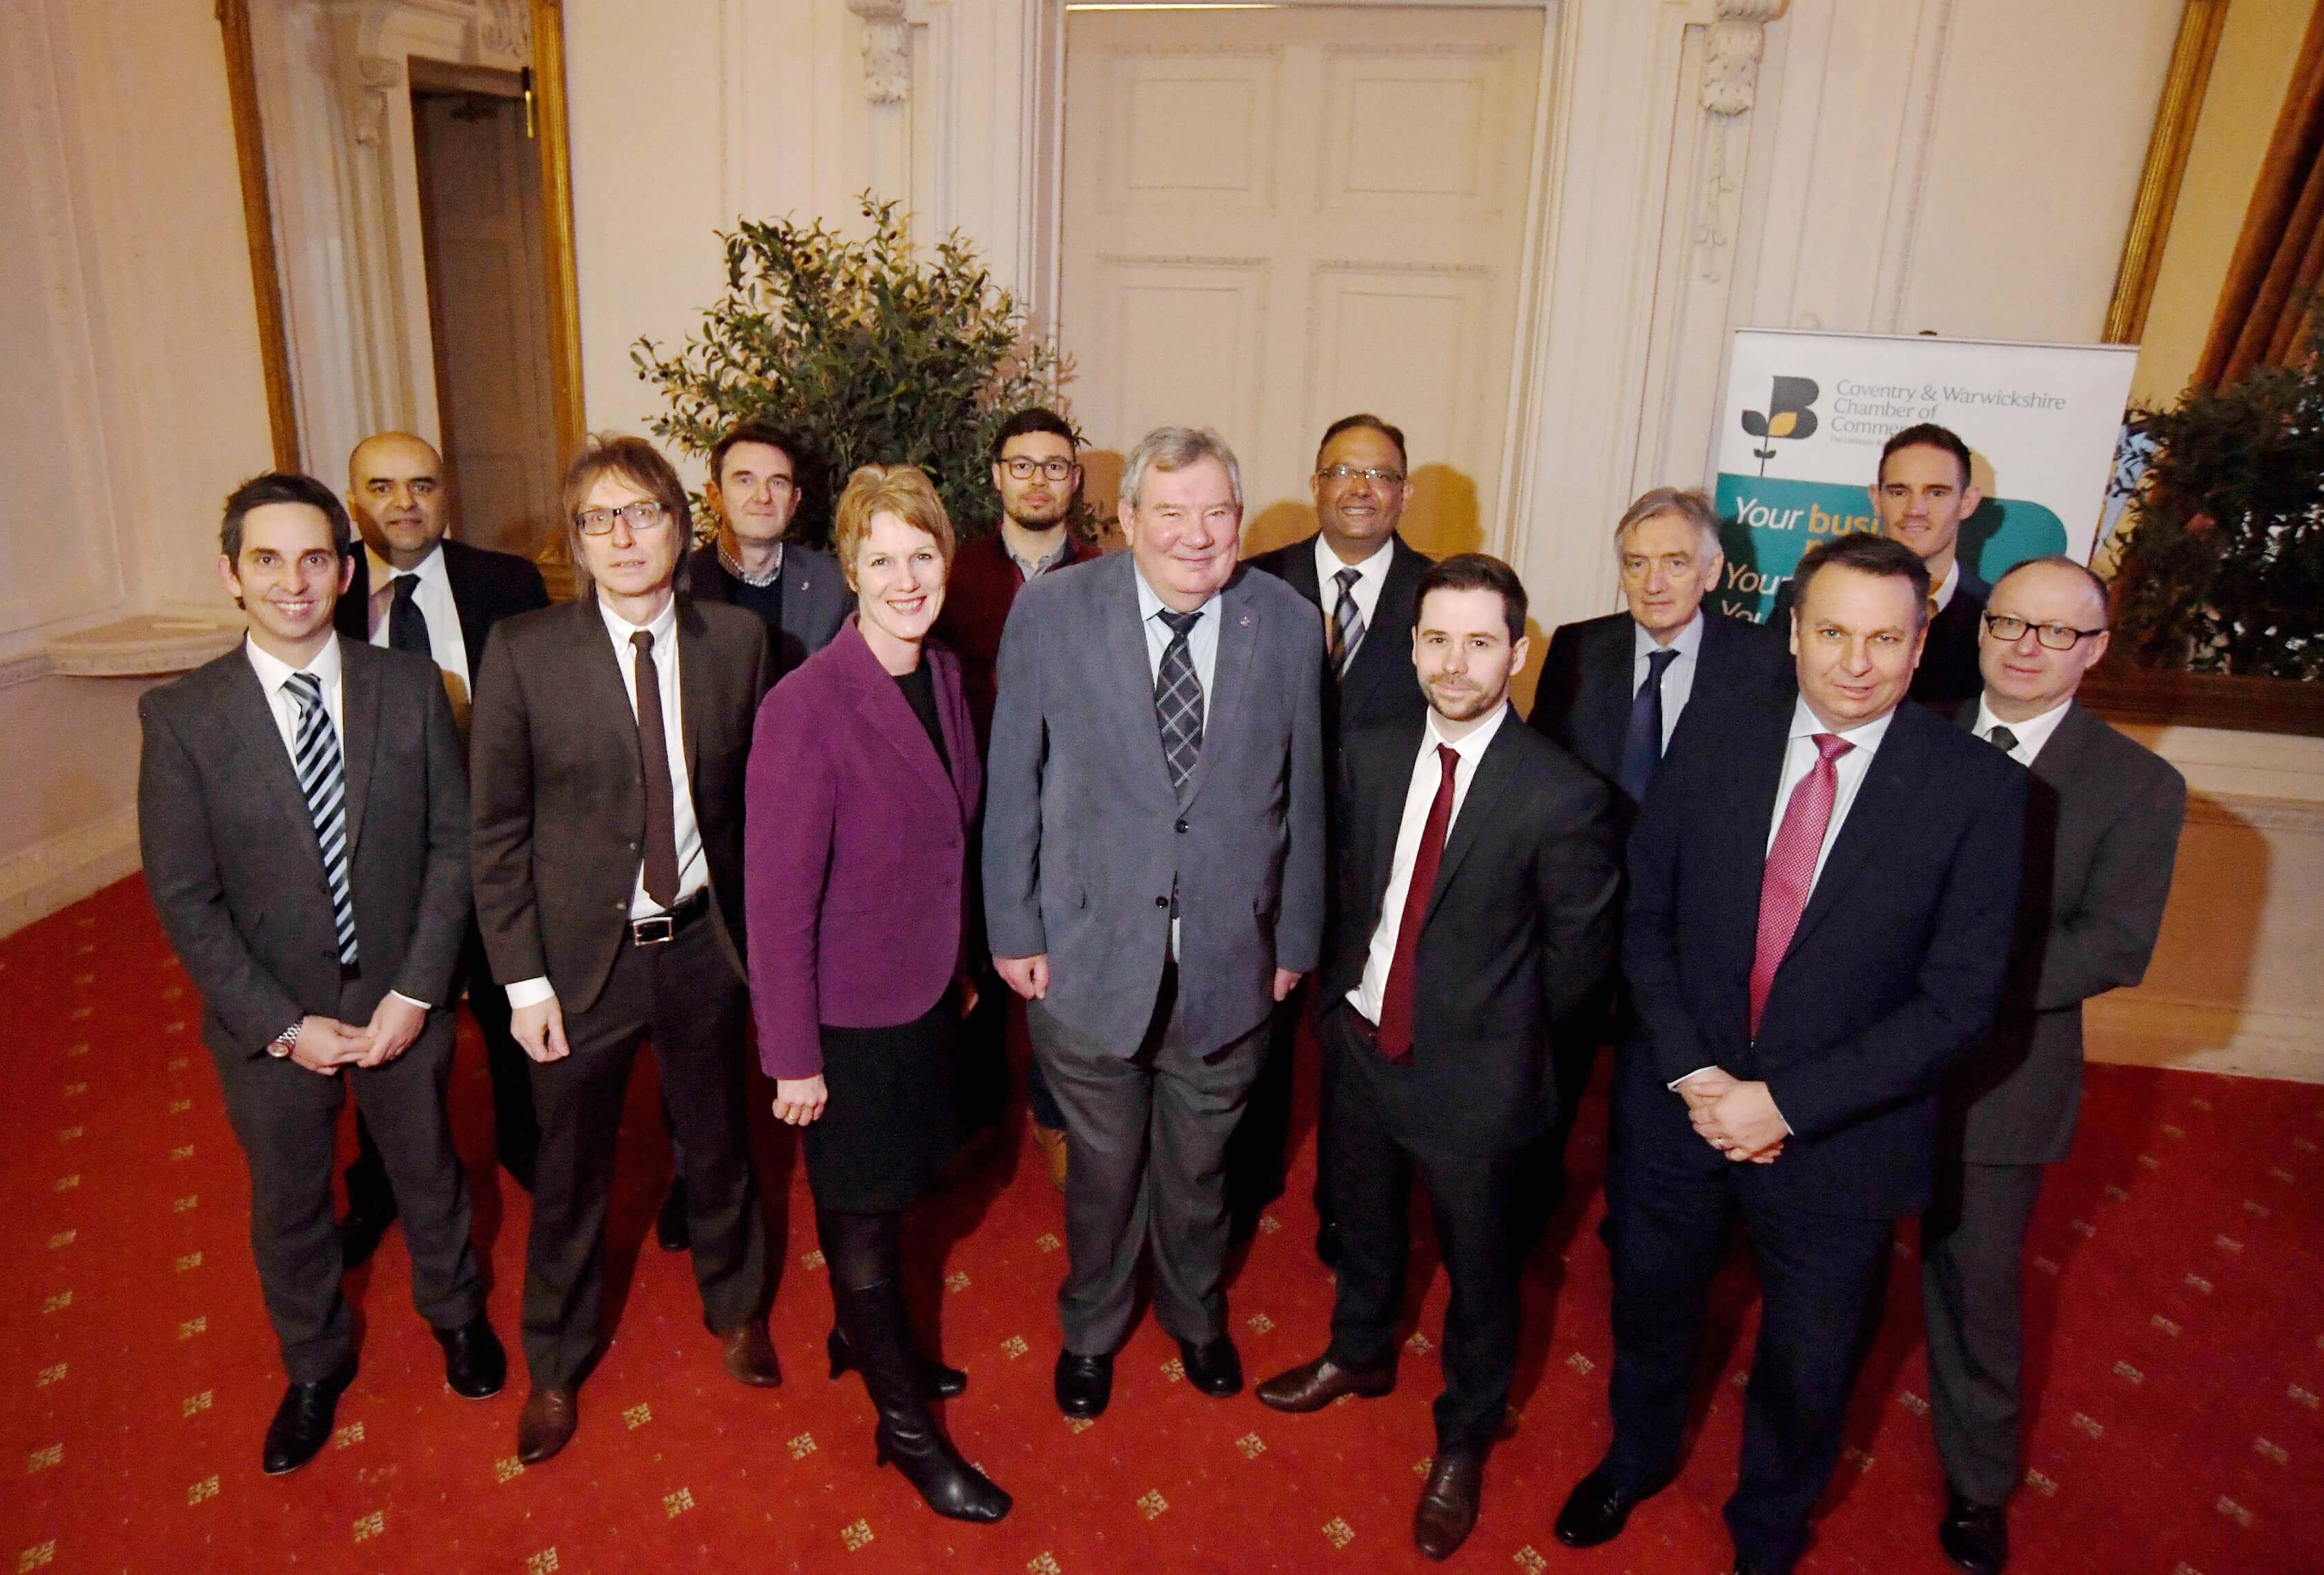 The plea from Coventry and Warwickshire businesses to Government